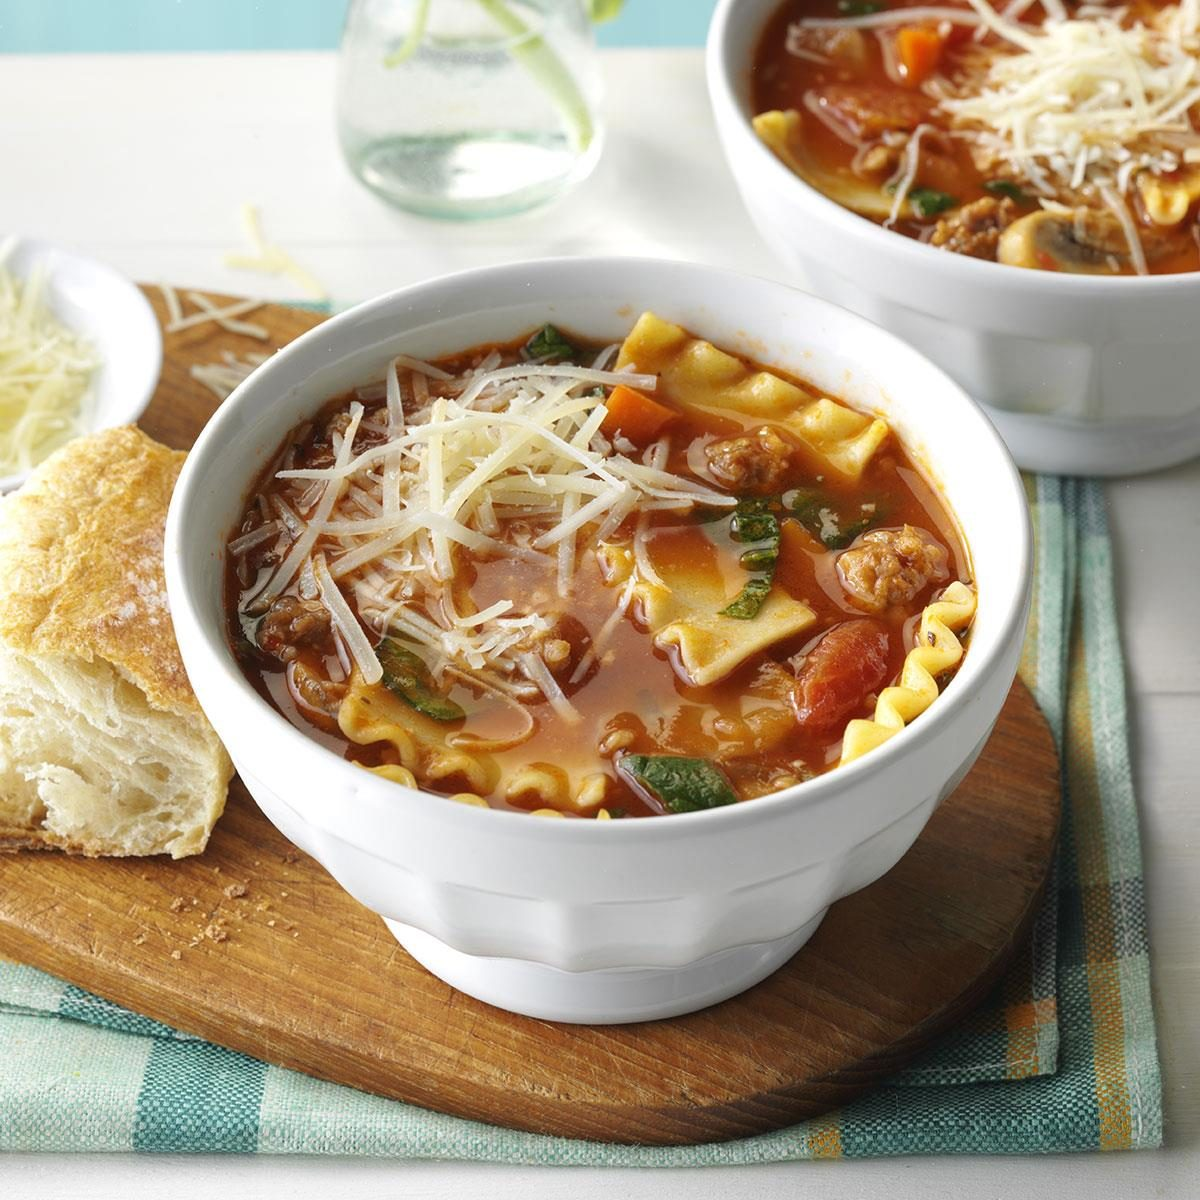 Day 23: Slow-Cooker Lasagna Soup